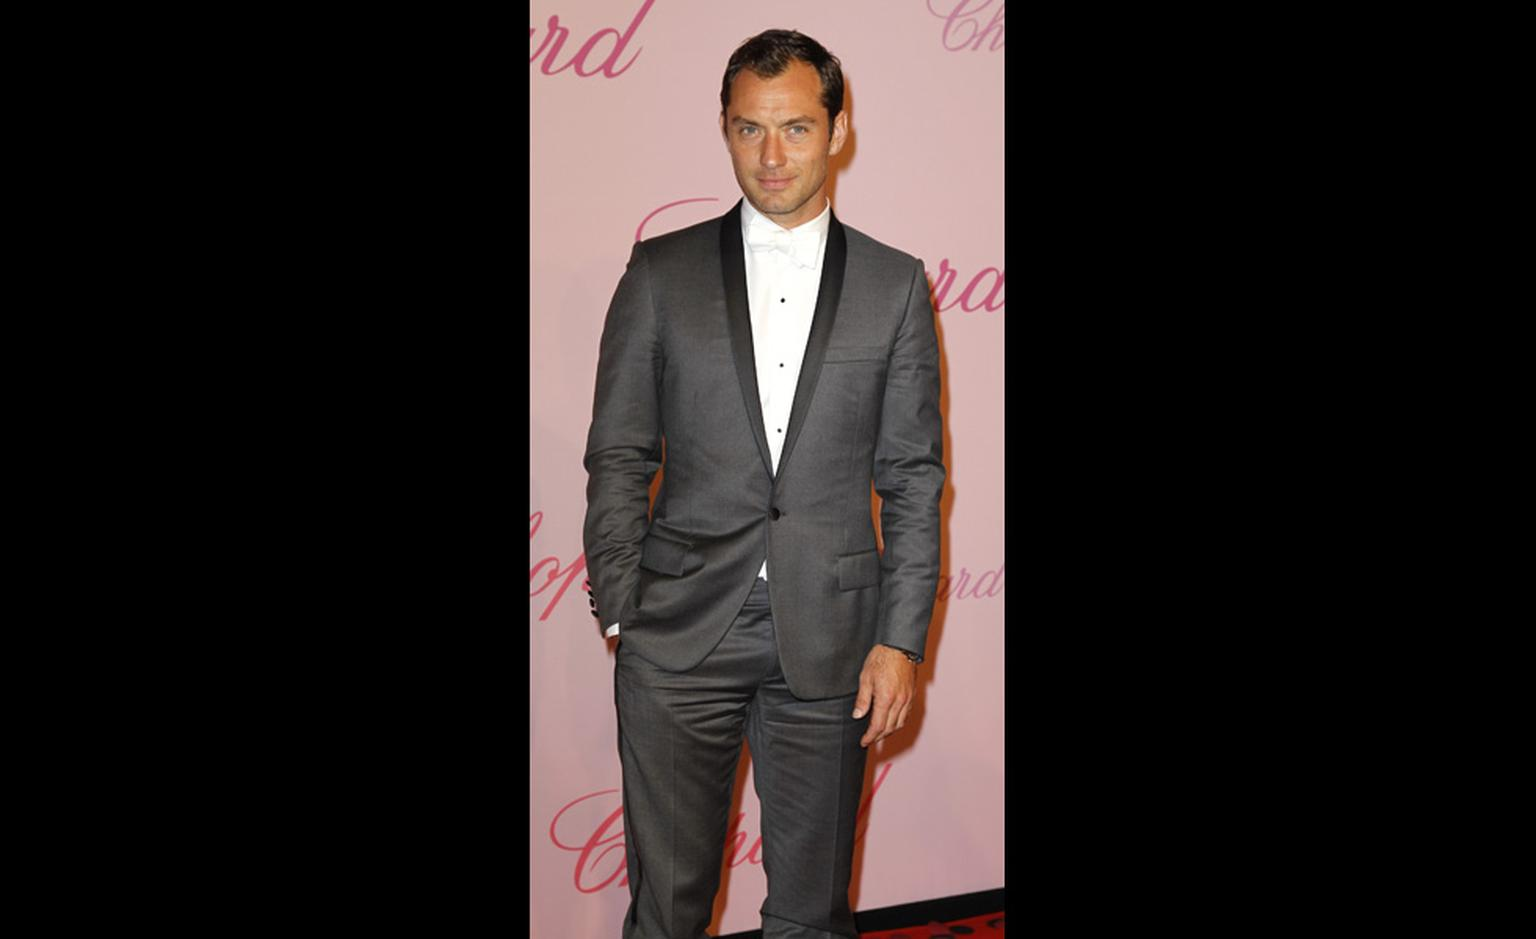 Jude Law at Chopard's Crazy Diamonds party at the Cannes Film Festival 2011 wearing a Chopard watch.